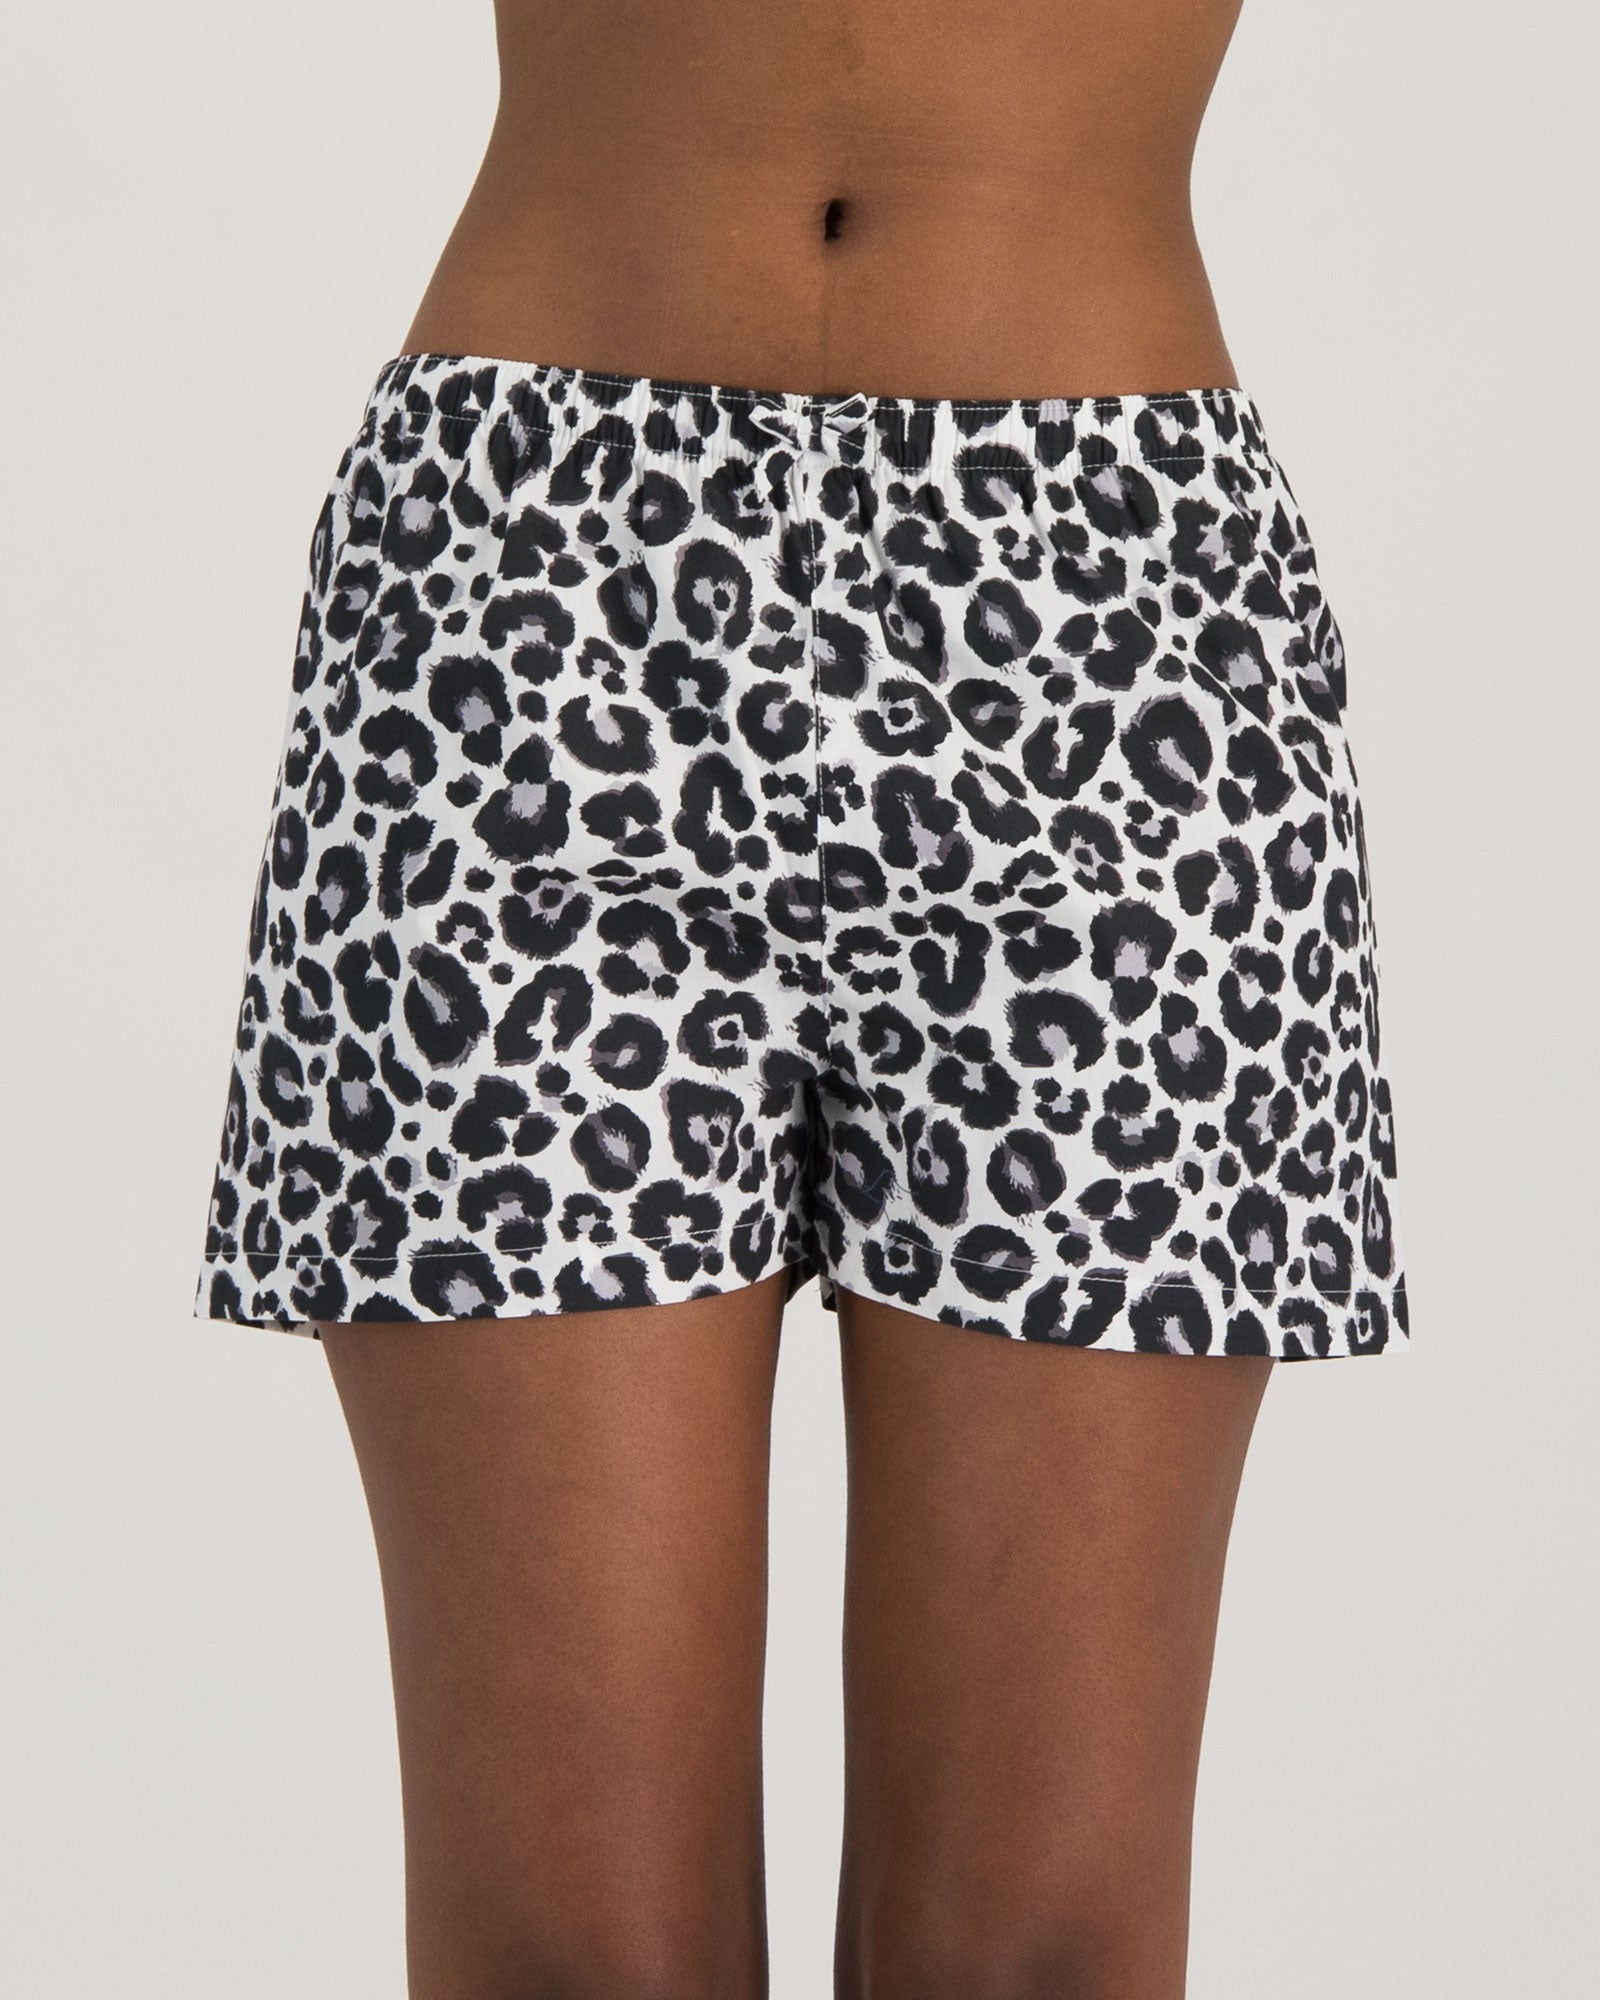 Womens Boxers Leopard White Front - Woodstock Laundry